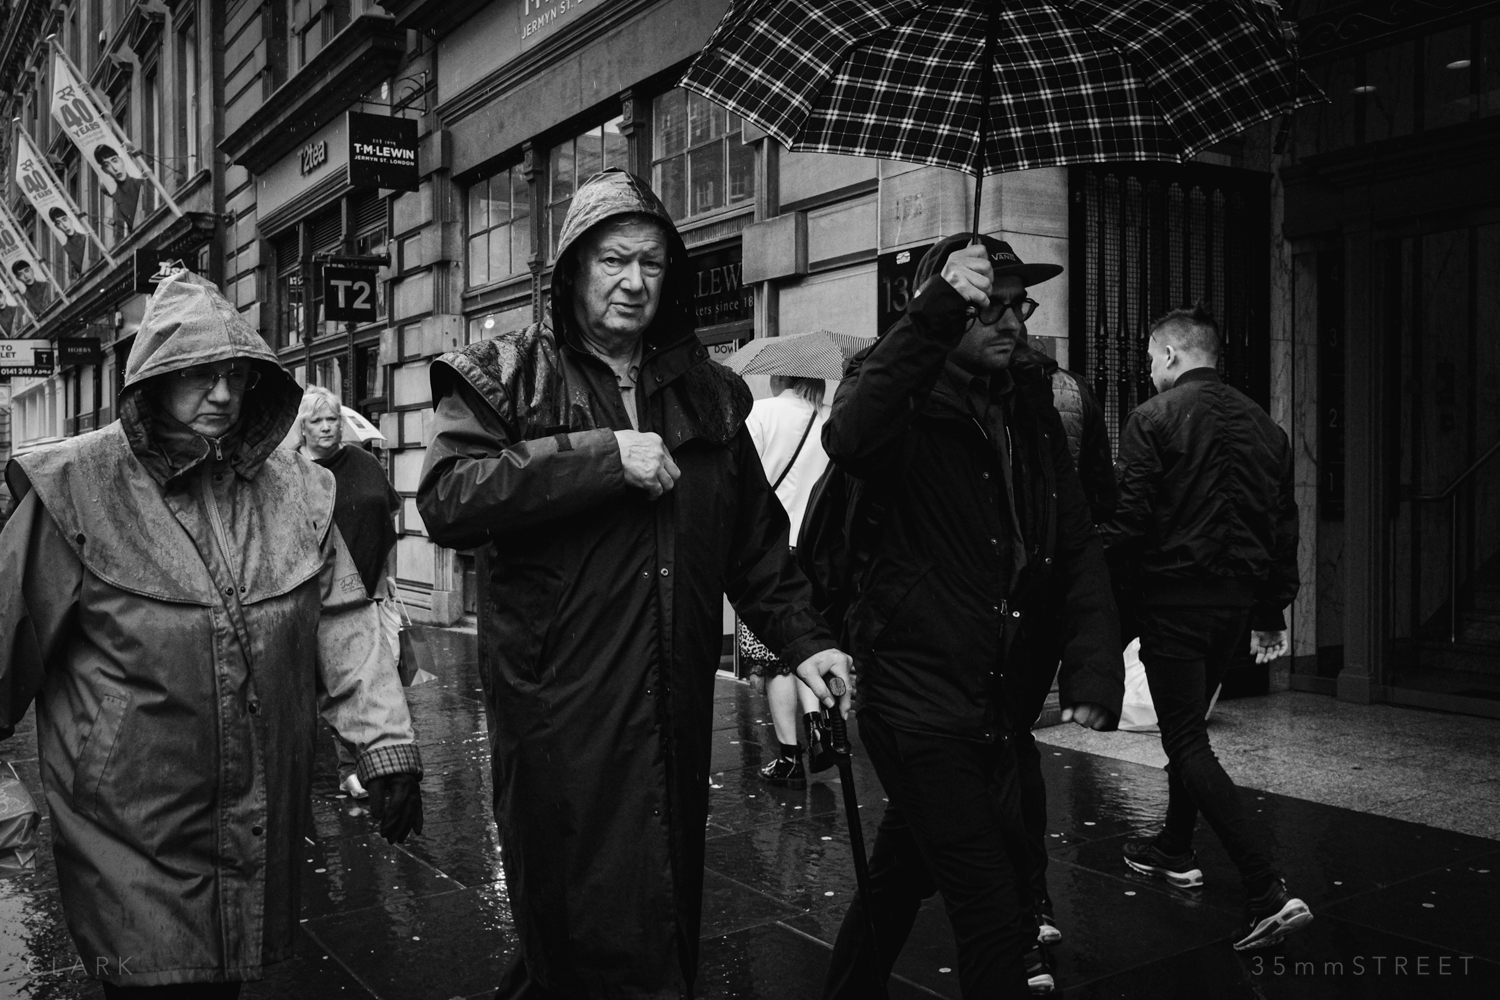 005_35mmStreet-Rainy-Friday-Glasgow.jpg